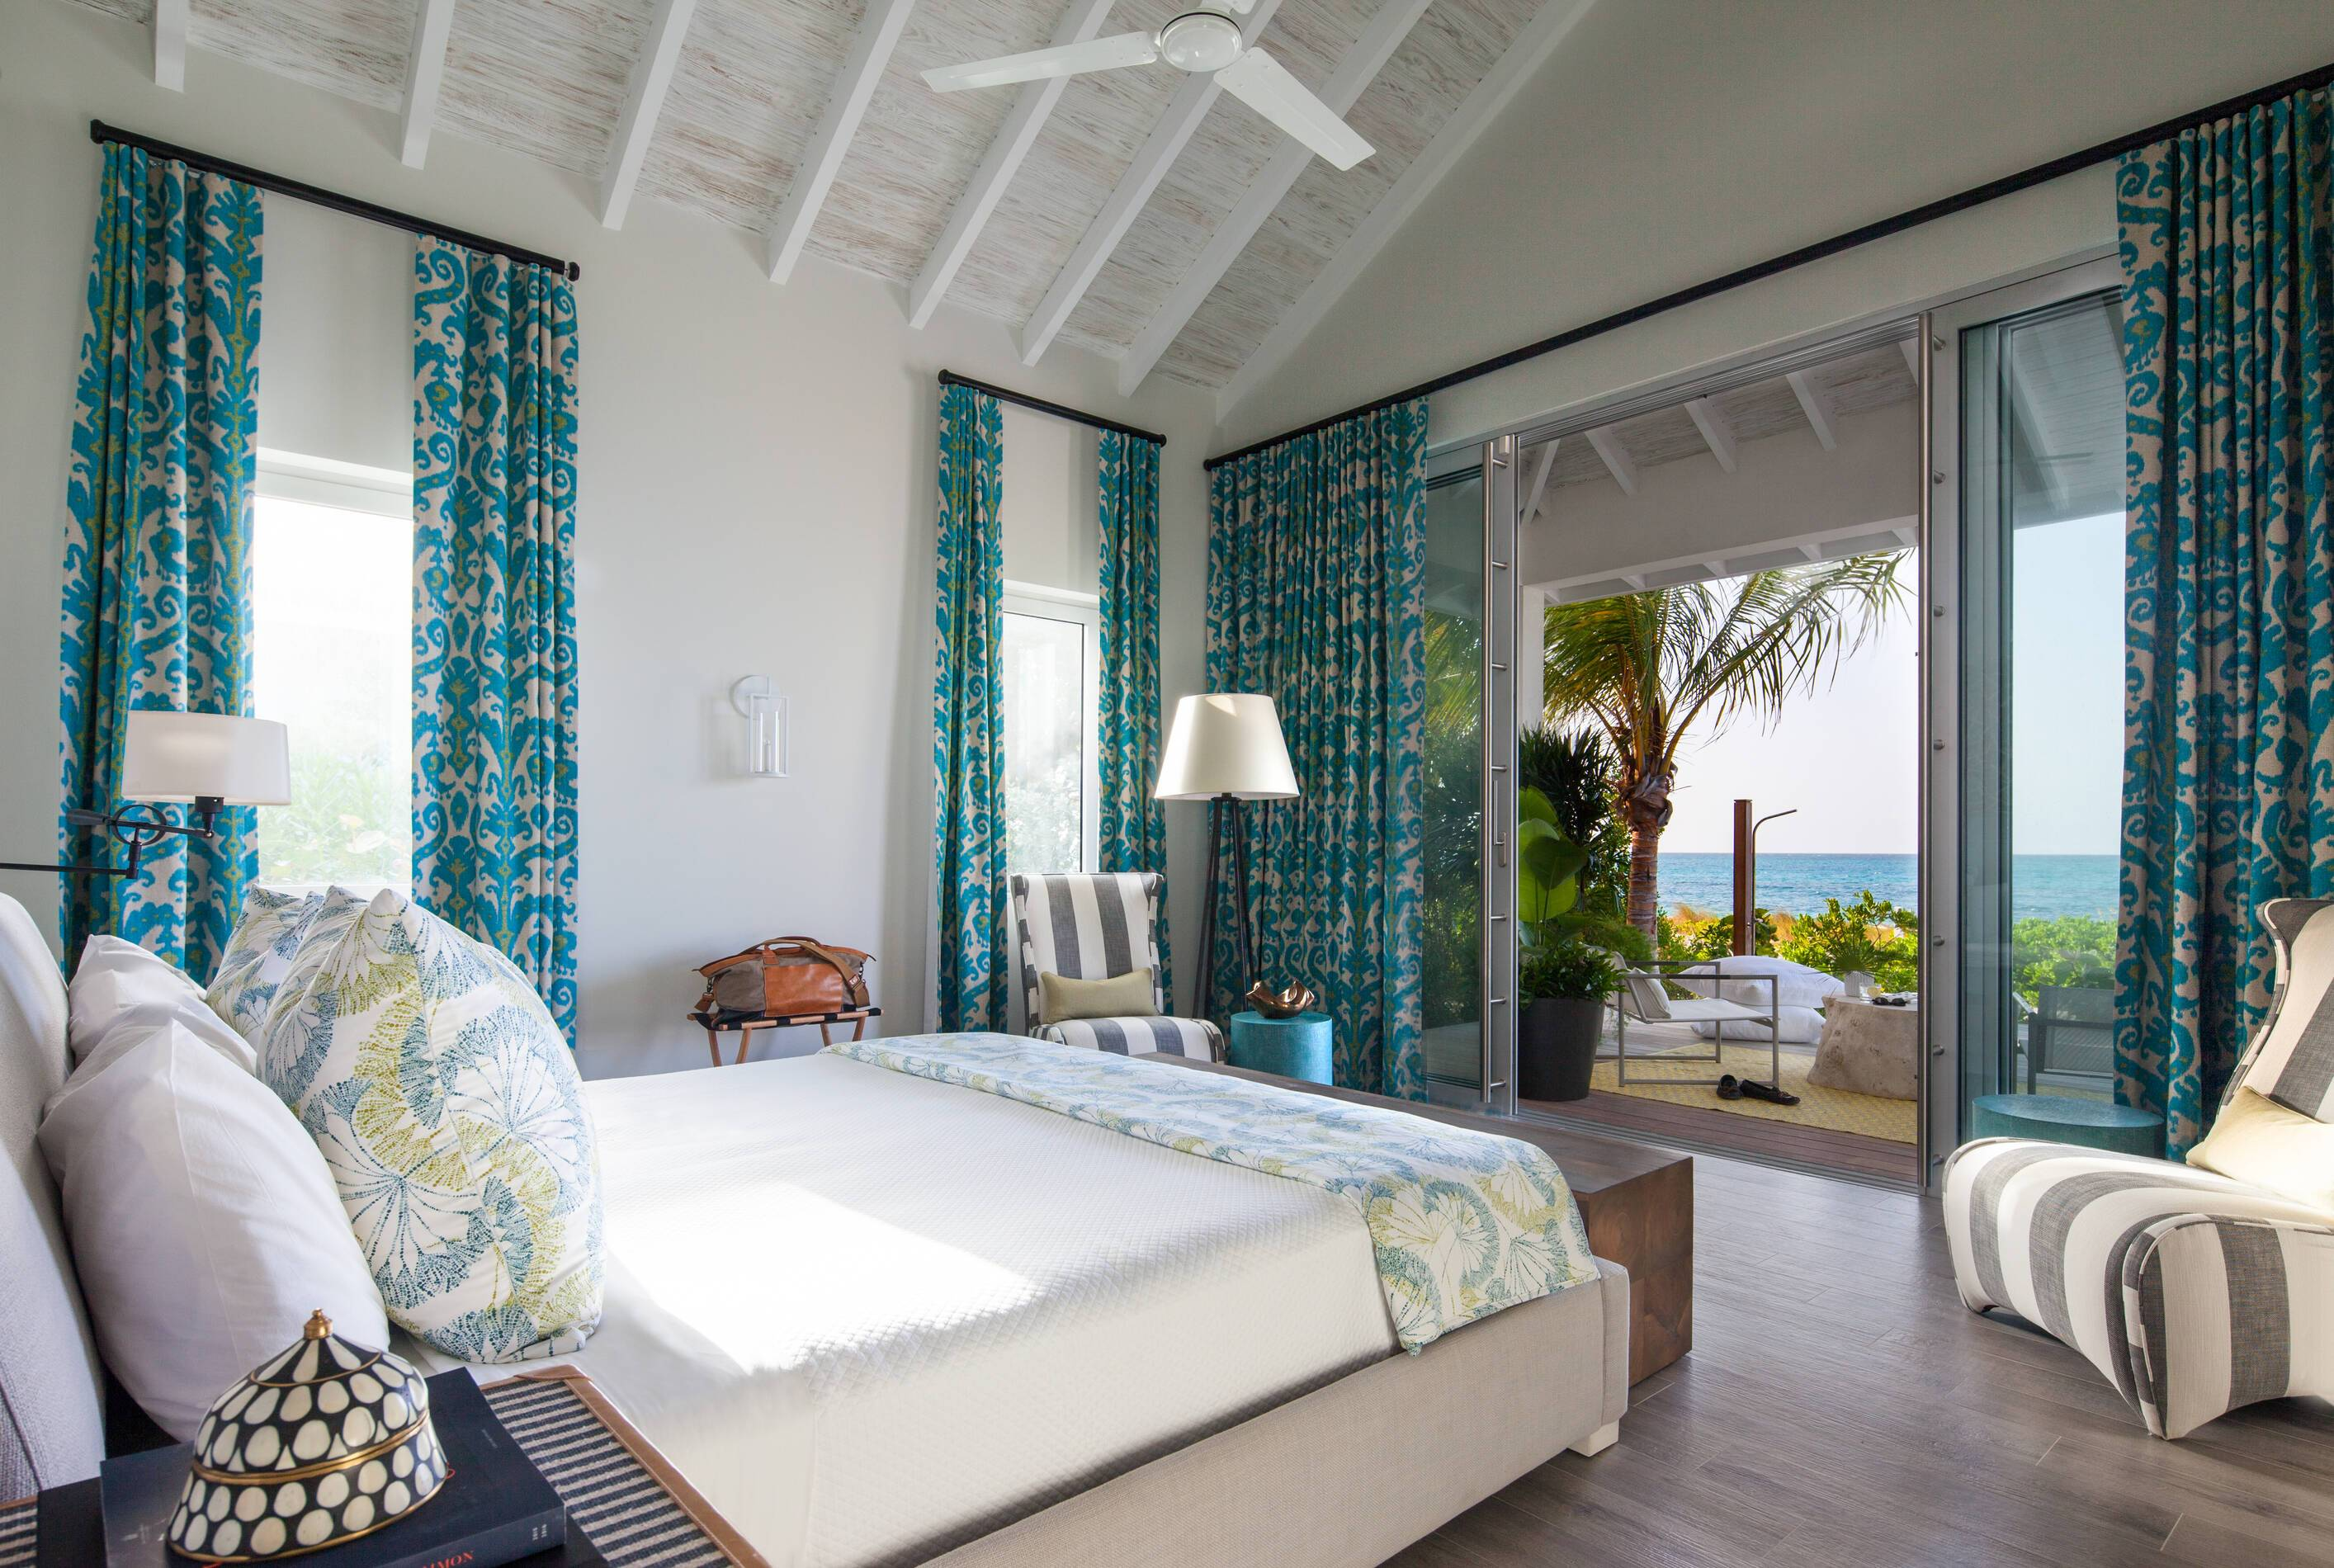 Grace Bay Villa The Residences Chambre Turks et Caicos